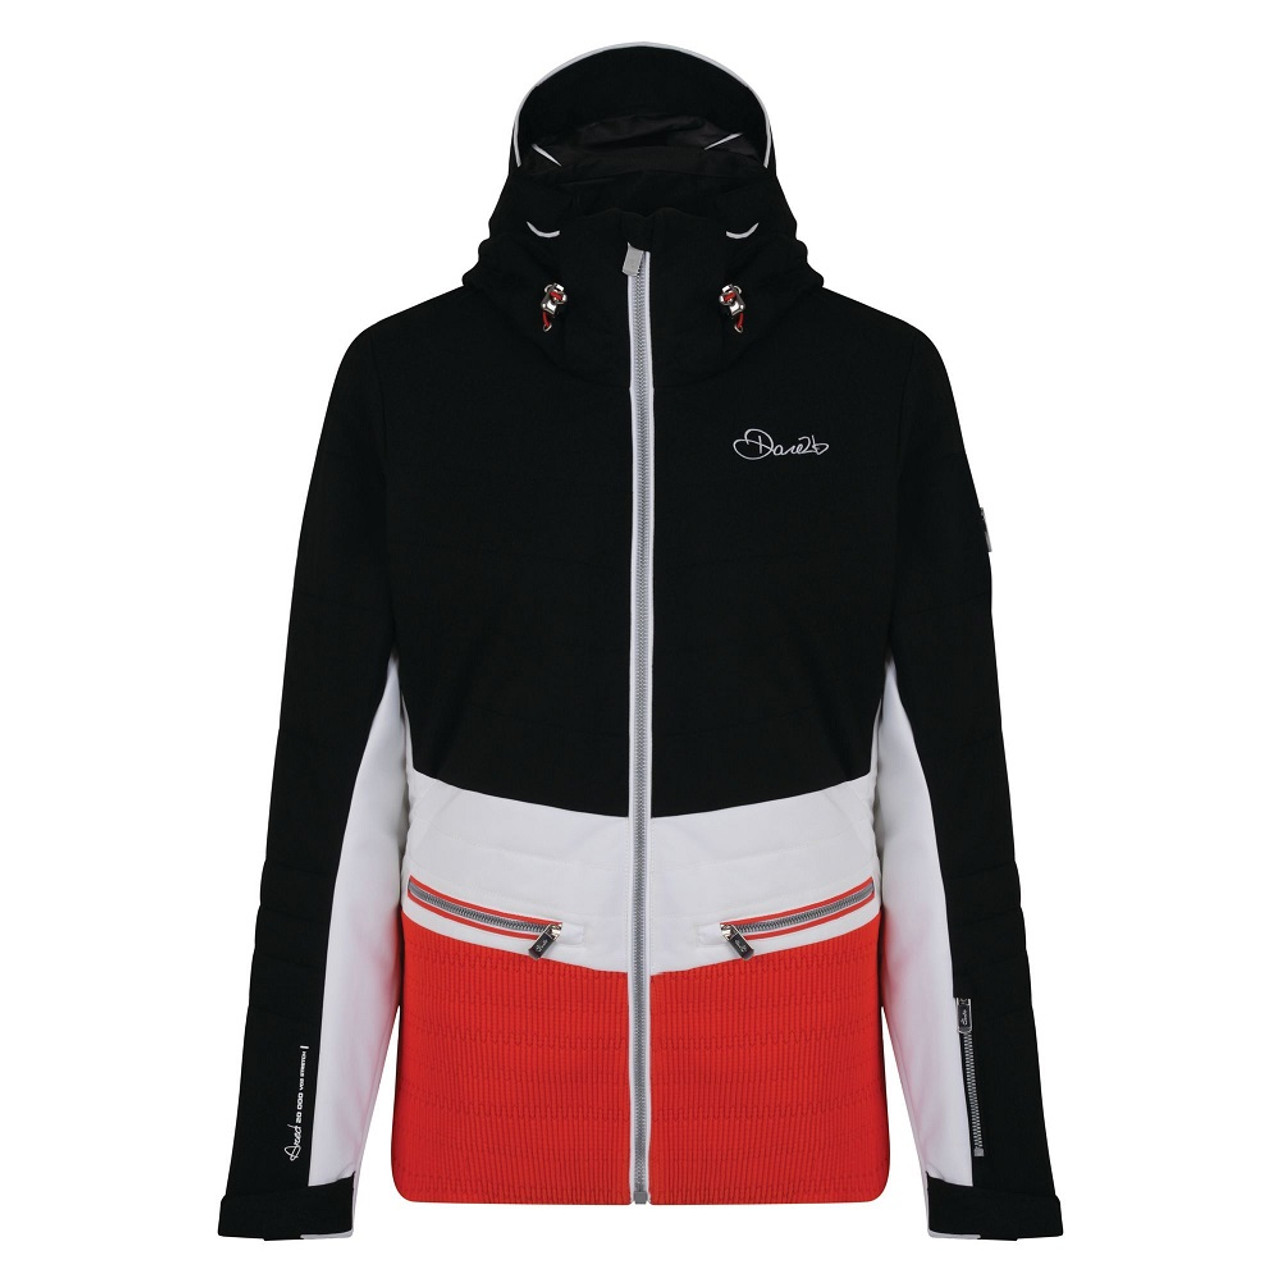 8300bf9a67 Dare 2b Surpass Ski Jacket - Lollipop Red